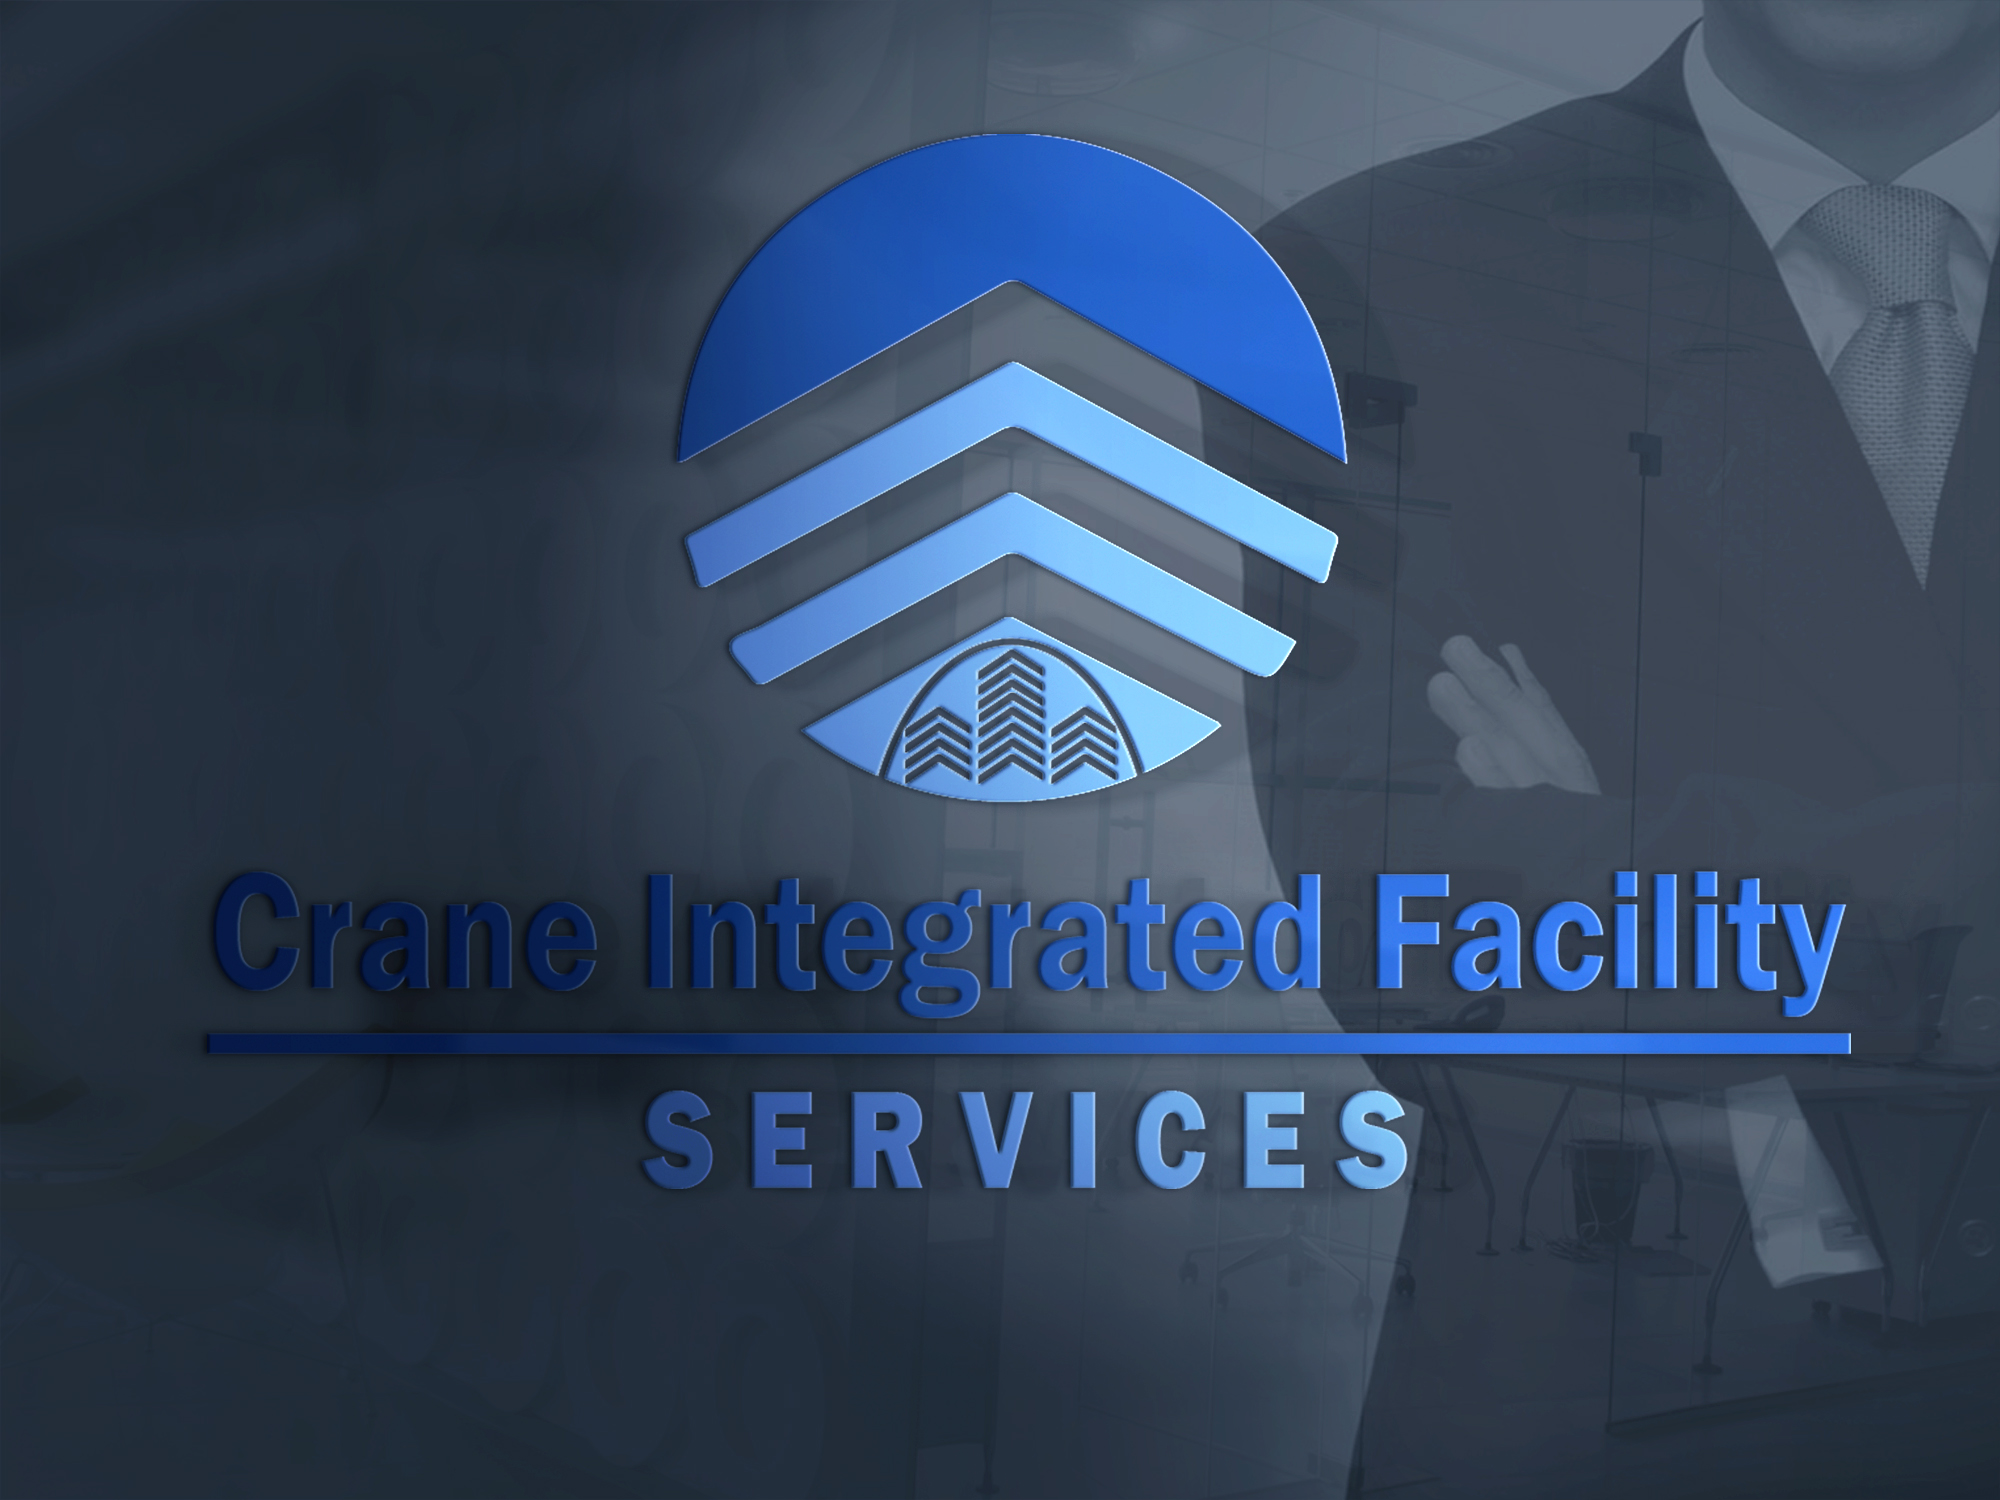 Logo Design by YANUAR ANTABUA - Entry No. 60 in the Logo Design Contest Inspiring Logo Design for Crane Integrated Facility Services.